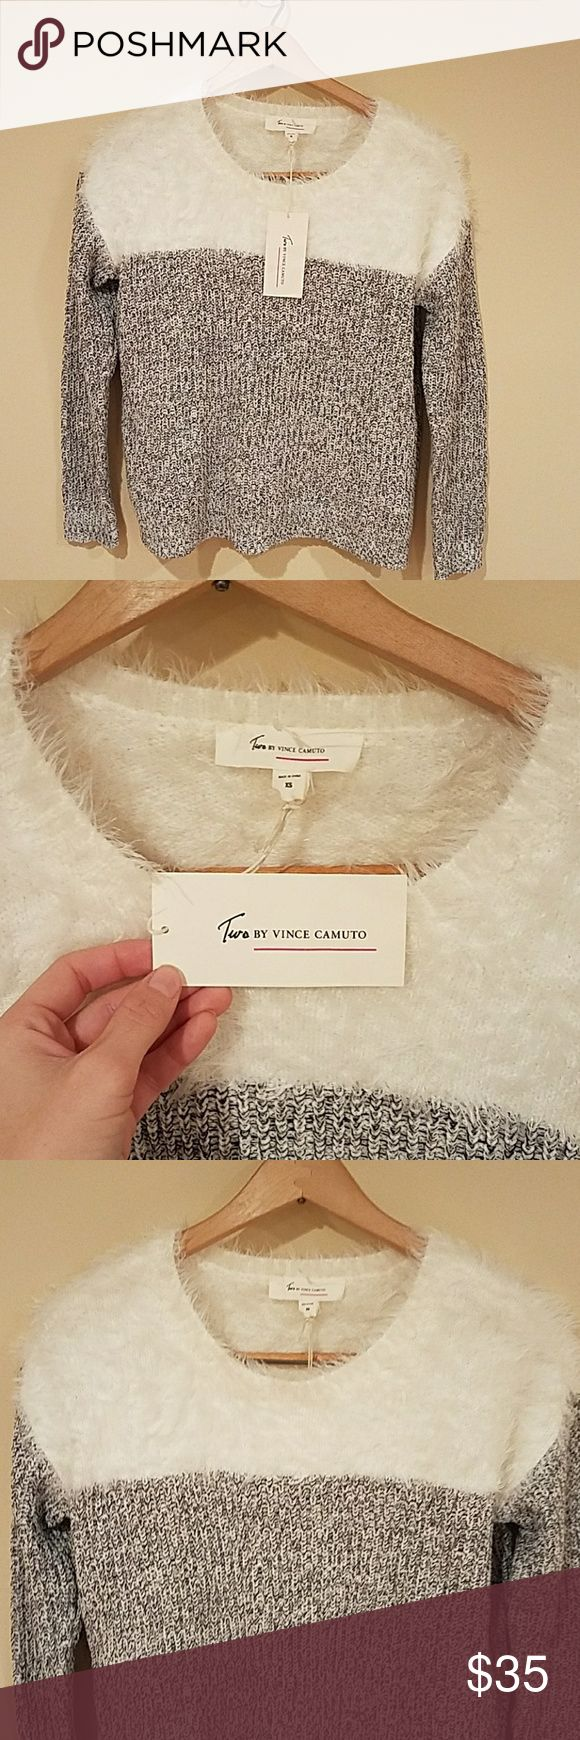 Vince Camuto Sweater MAKR OFFER! Has original Vince Camuto tag, missing store tag (still has plastic tag stick attached). White eyelash effect on top. Knit yarn on bottom.  White and grey/black on bottom. Sweaters